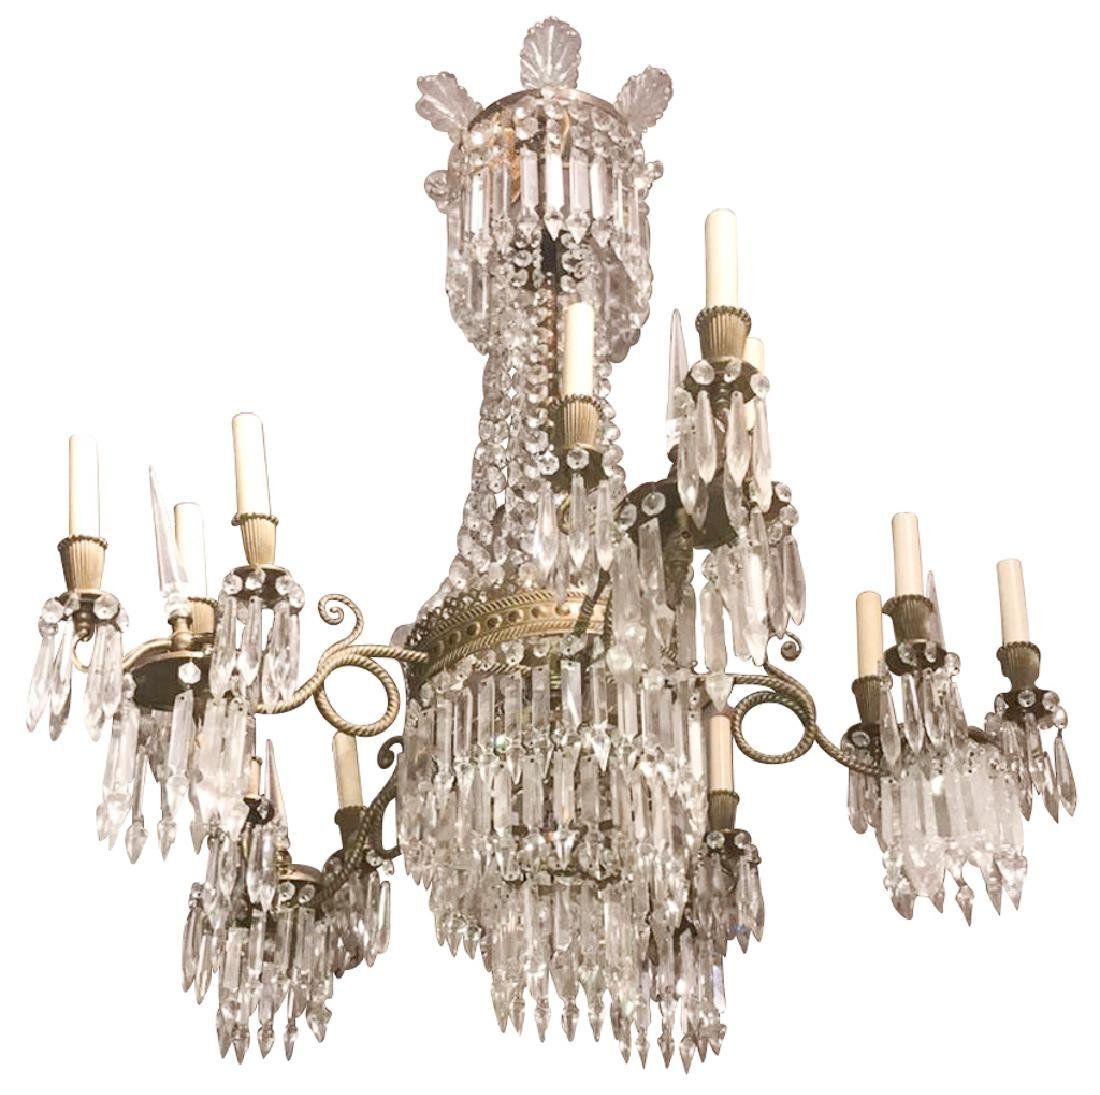 Parisian Brass And Crystal Chandelier, Each